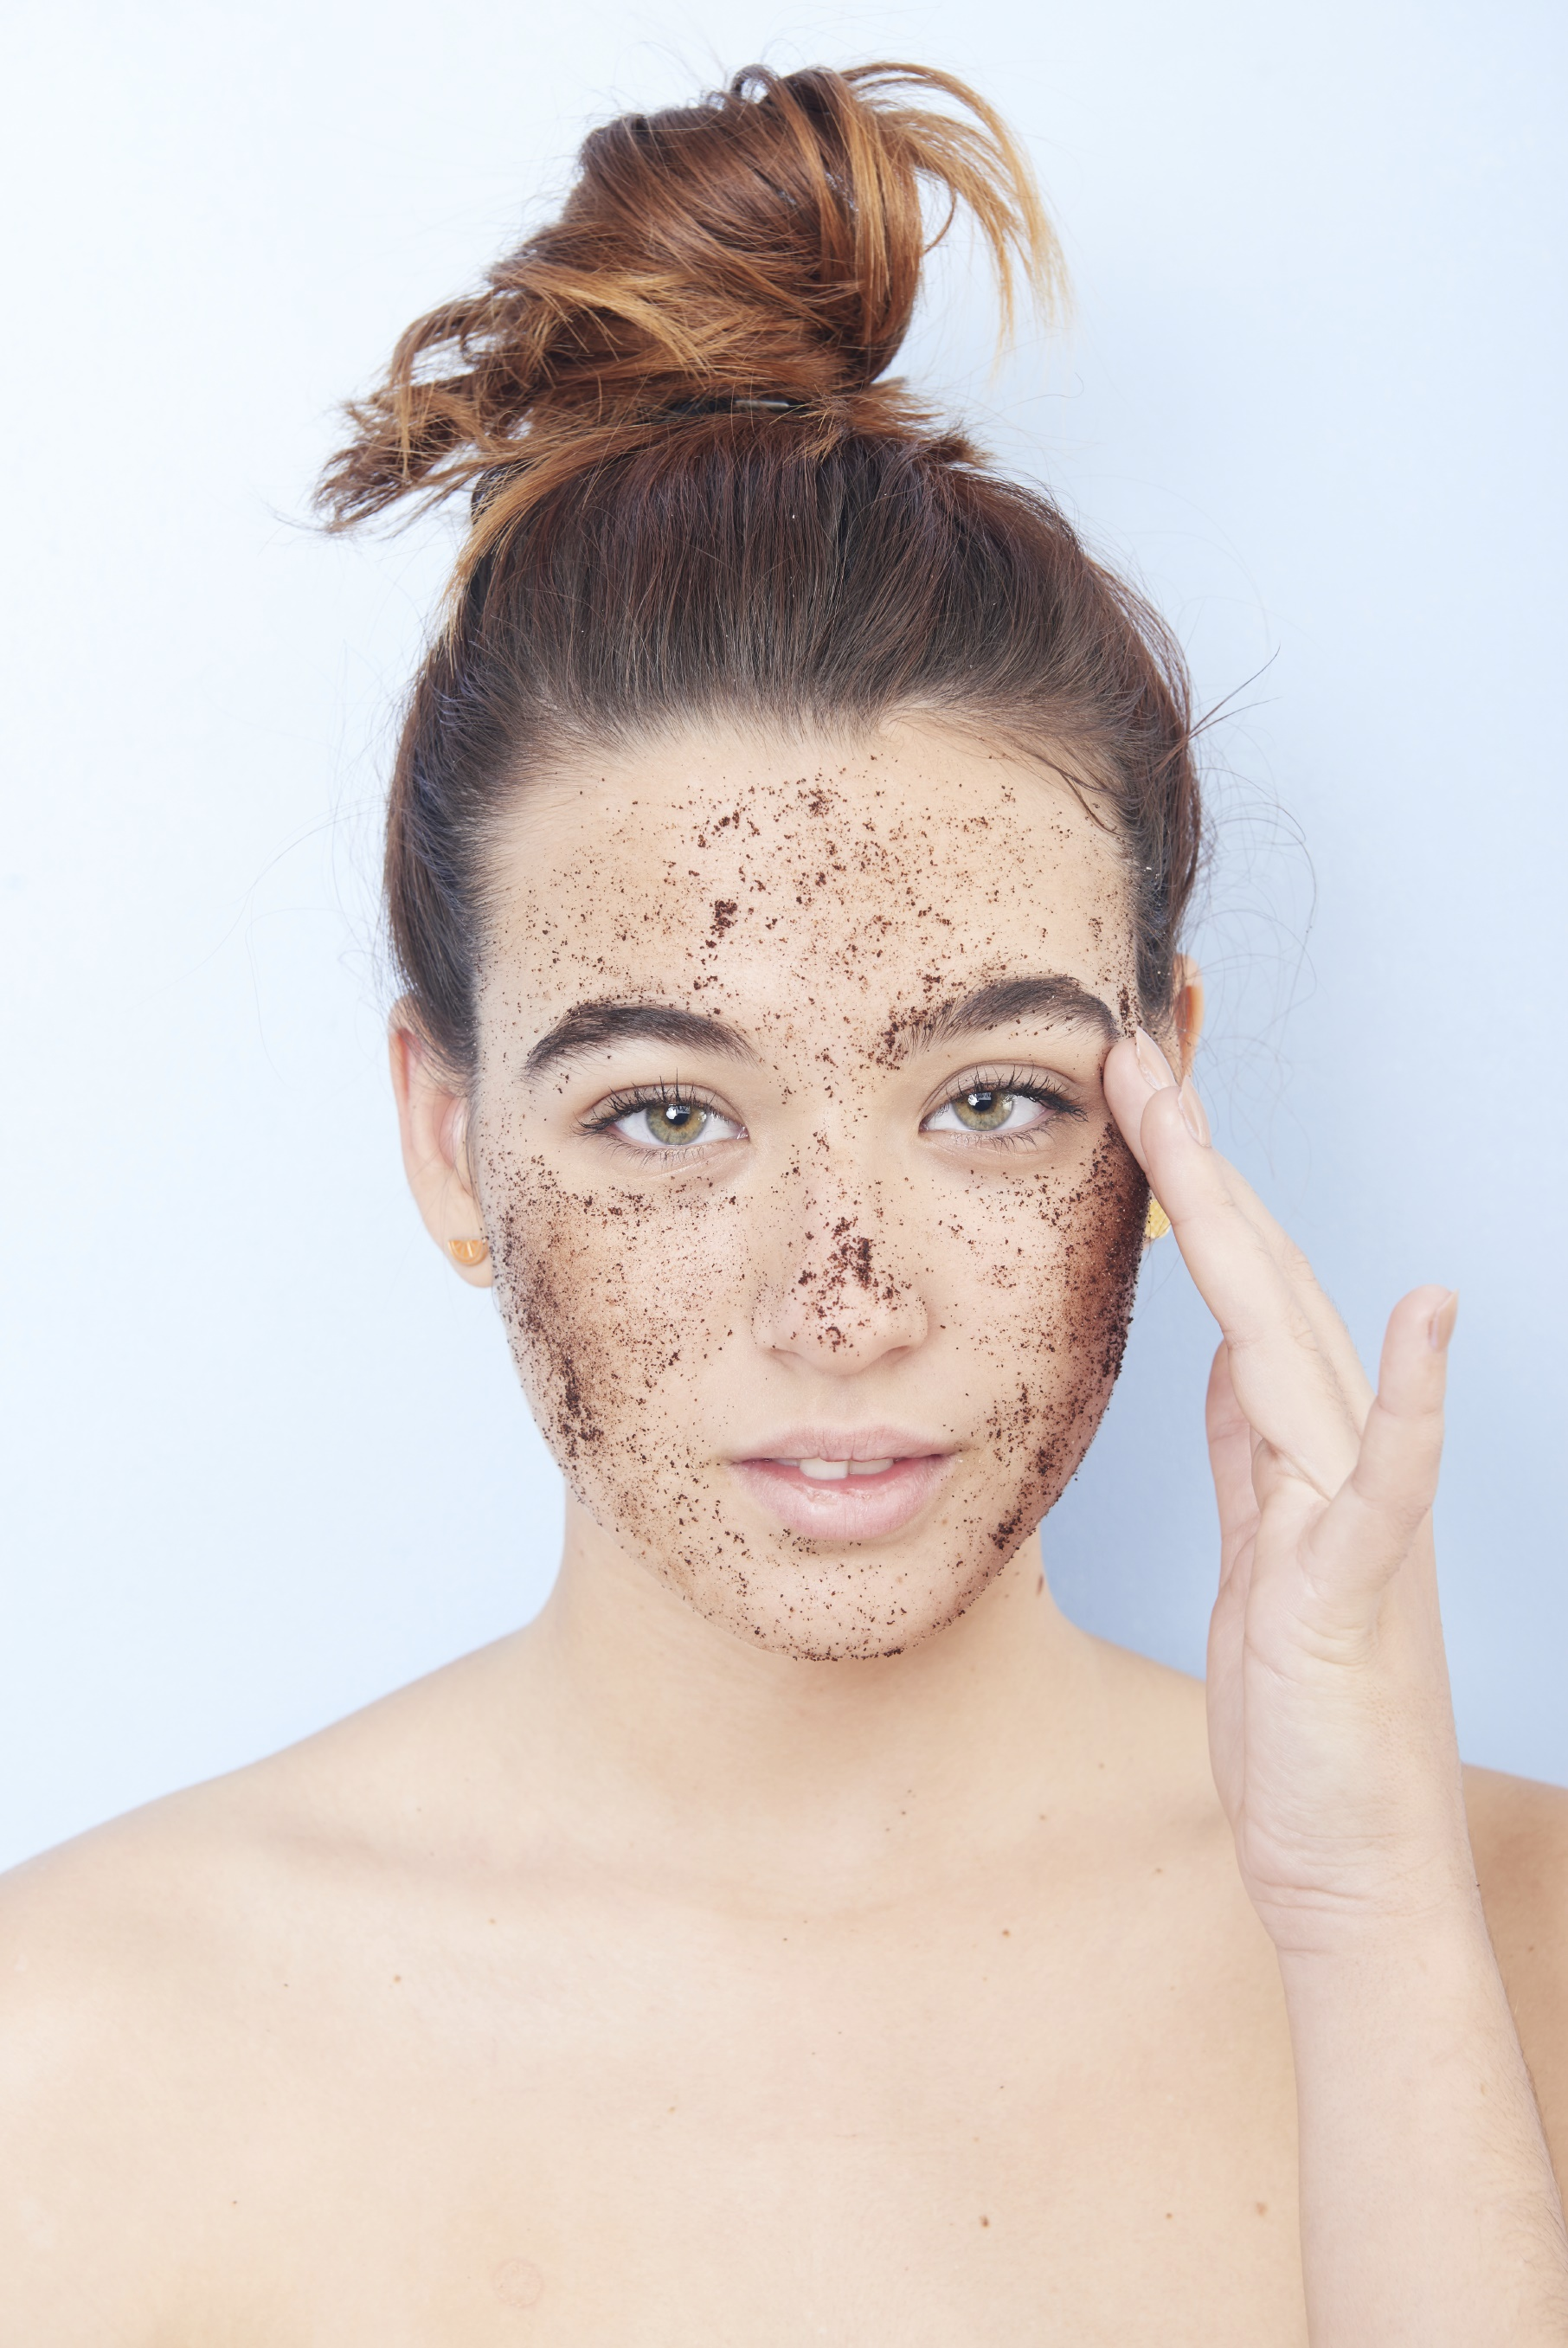 Don't do this during an acne breakout.